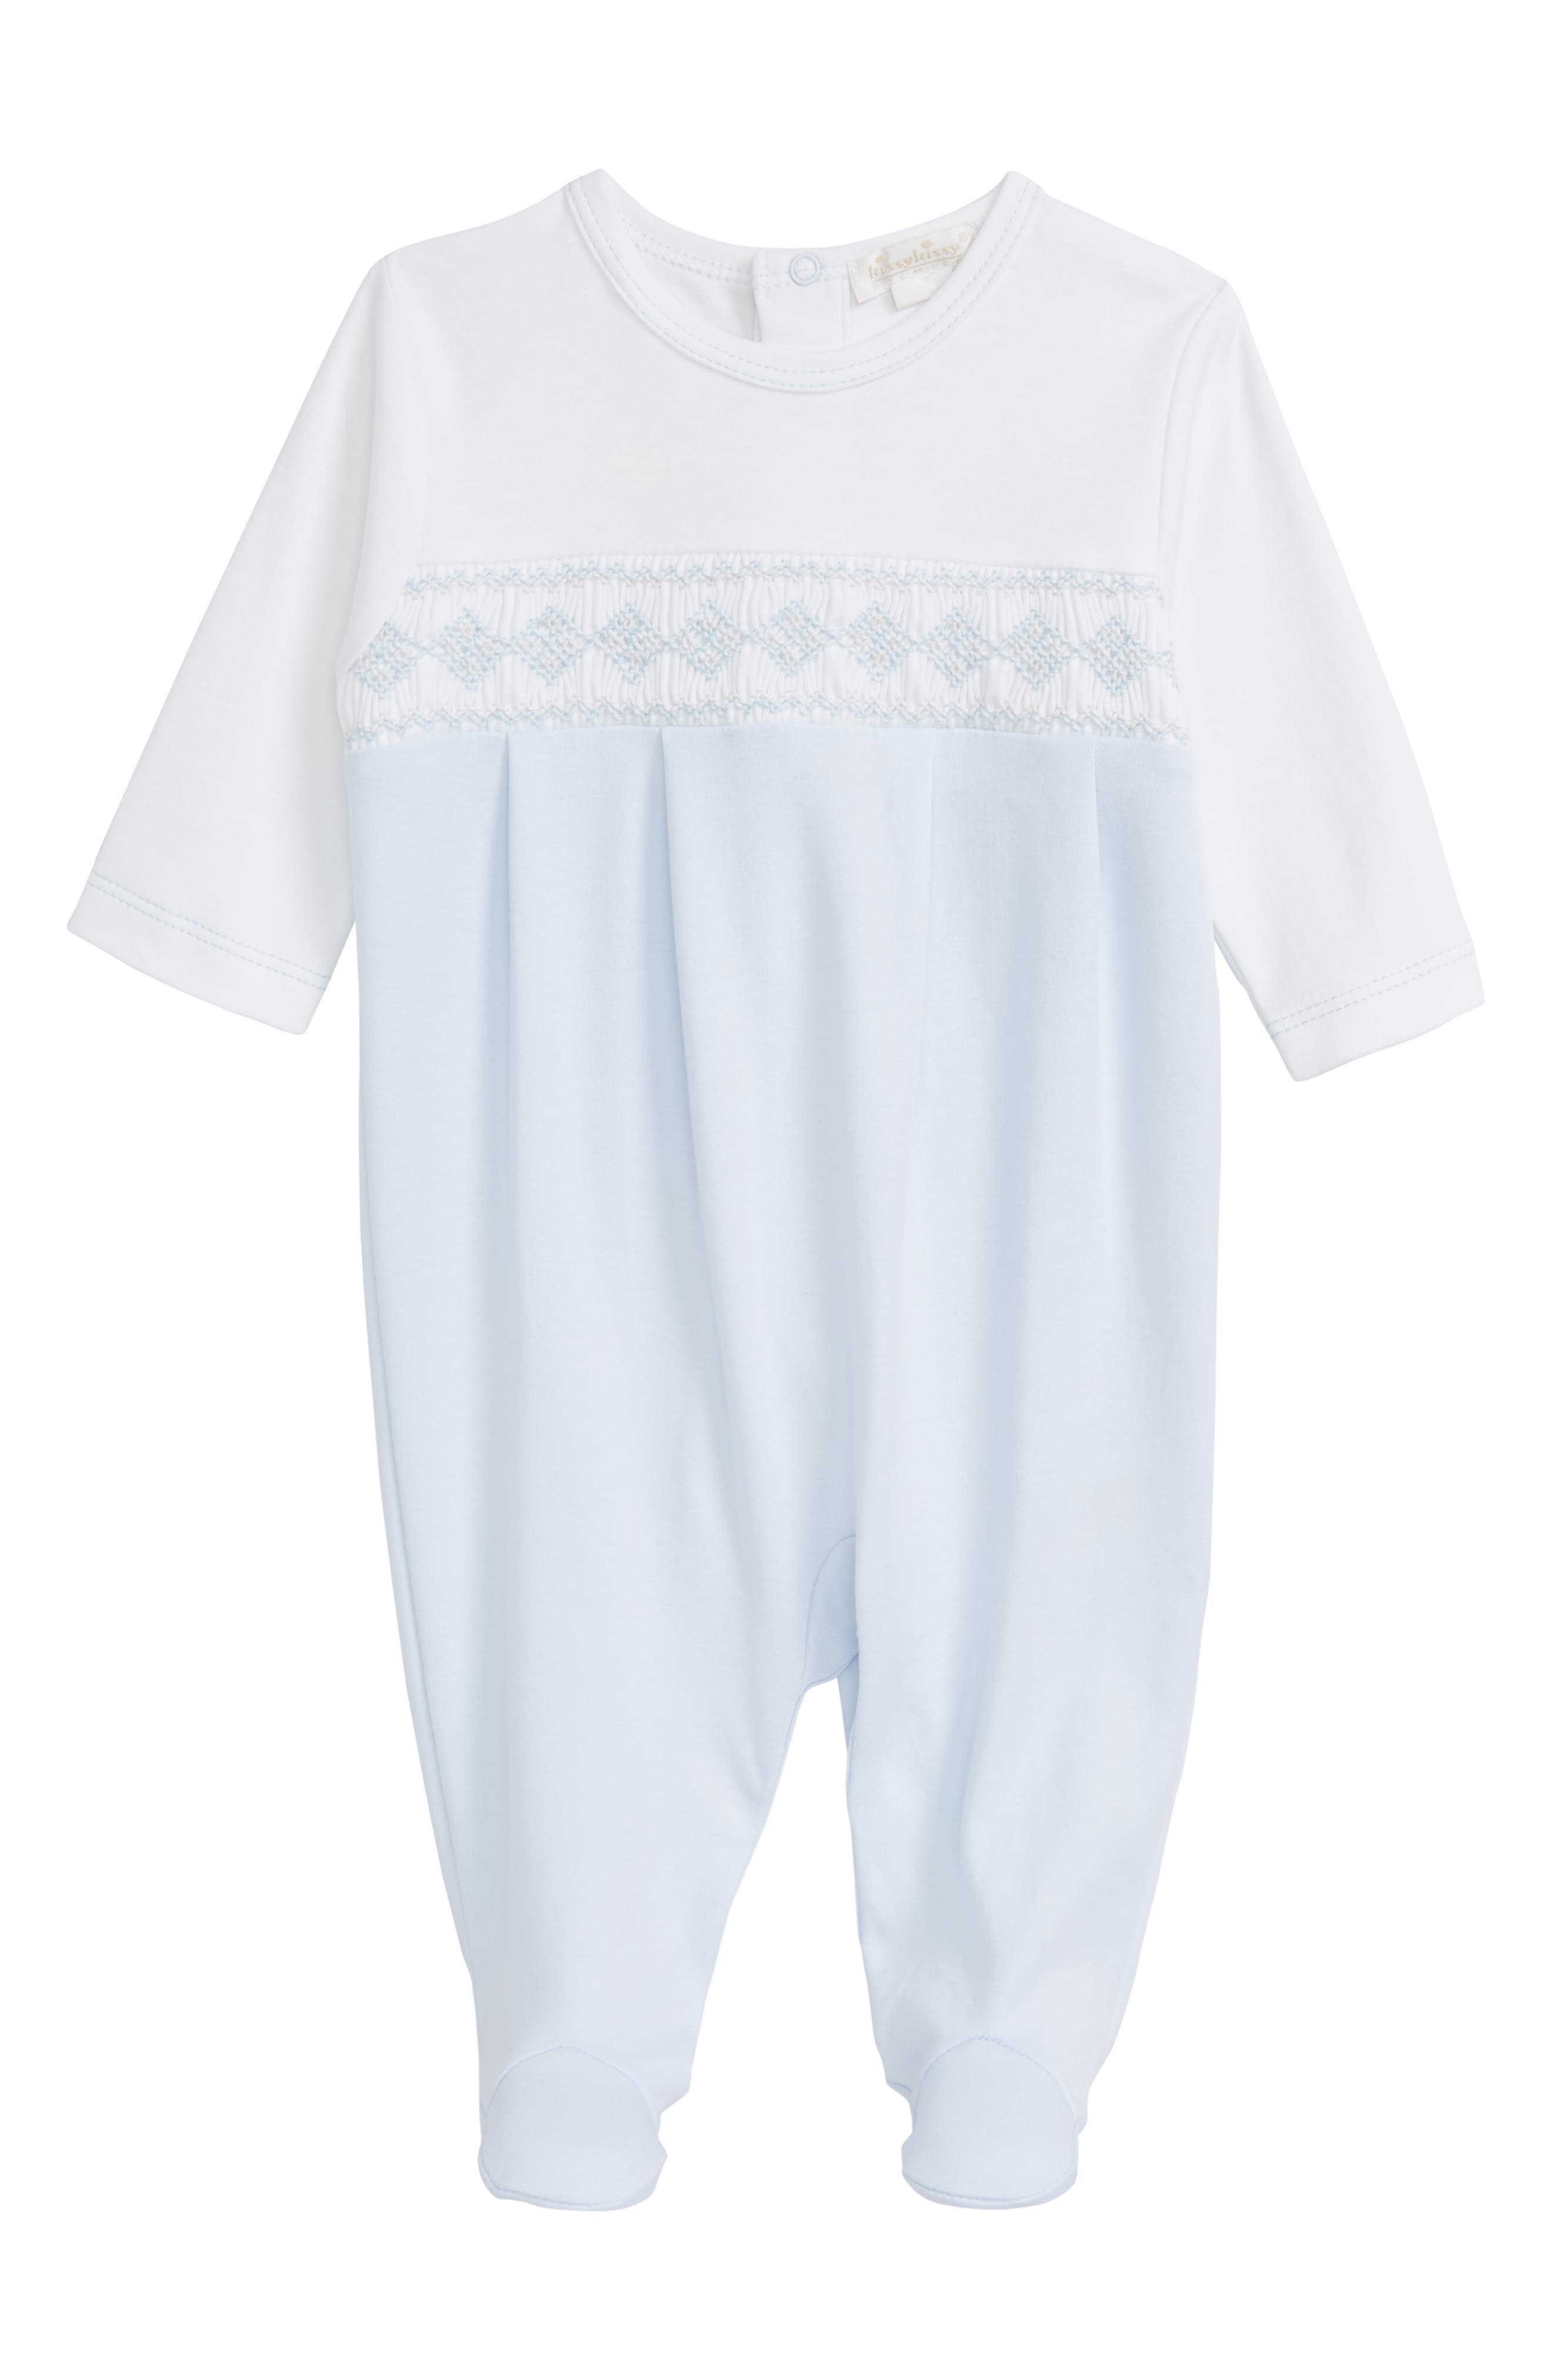 Club Summer Smocked Pima Cotton Footie,                             Main thumbnail 1, color,                             480